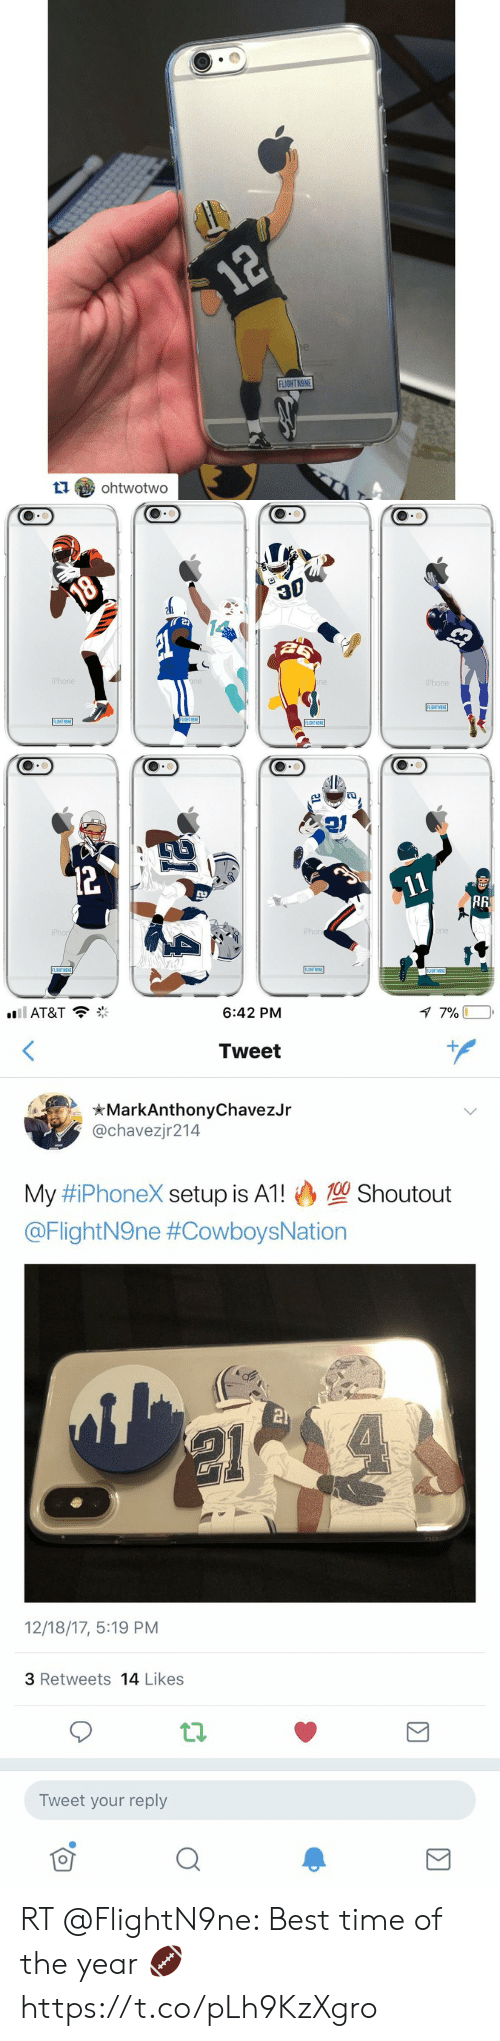 Basketball, Iphone, and White People: 12  12  e  FLIGHT NONE  ohtwotwo   18  iPhone  one  one  iPhone  FLIGHT NONE  FLIGHT N9NE  FLIGHT NSNE  FLIGHT NONE  12  11  iPhon  iPhone  one  FLIGHTN9NE  FLIGHTN9NE  FLIGHT N9NE   7 7%  ll AT&T  6:42 PM  Tweet  MarkAnthonyChavezJr  @chavezjr214  100 Shoutout  My #iPhoneX setup is A1!  @FlightN9ne #CowboysNation  21  12/18/17, 5:19 PM  3 Retweets 14 Likes  Tweet your reply RT @FlightN9ne: Best time of the year 🏈 https://t.co/pLh9KzXgro